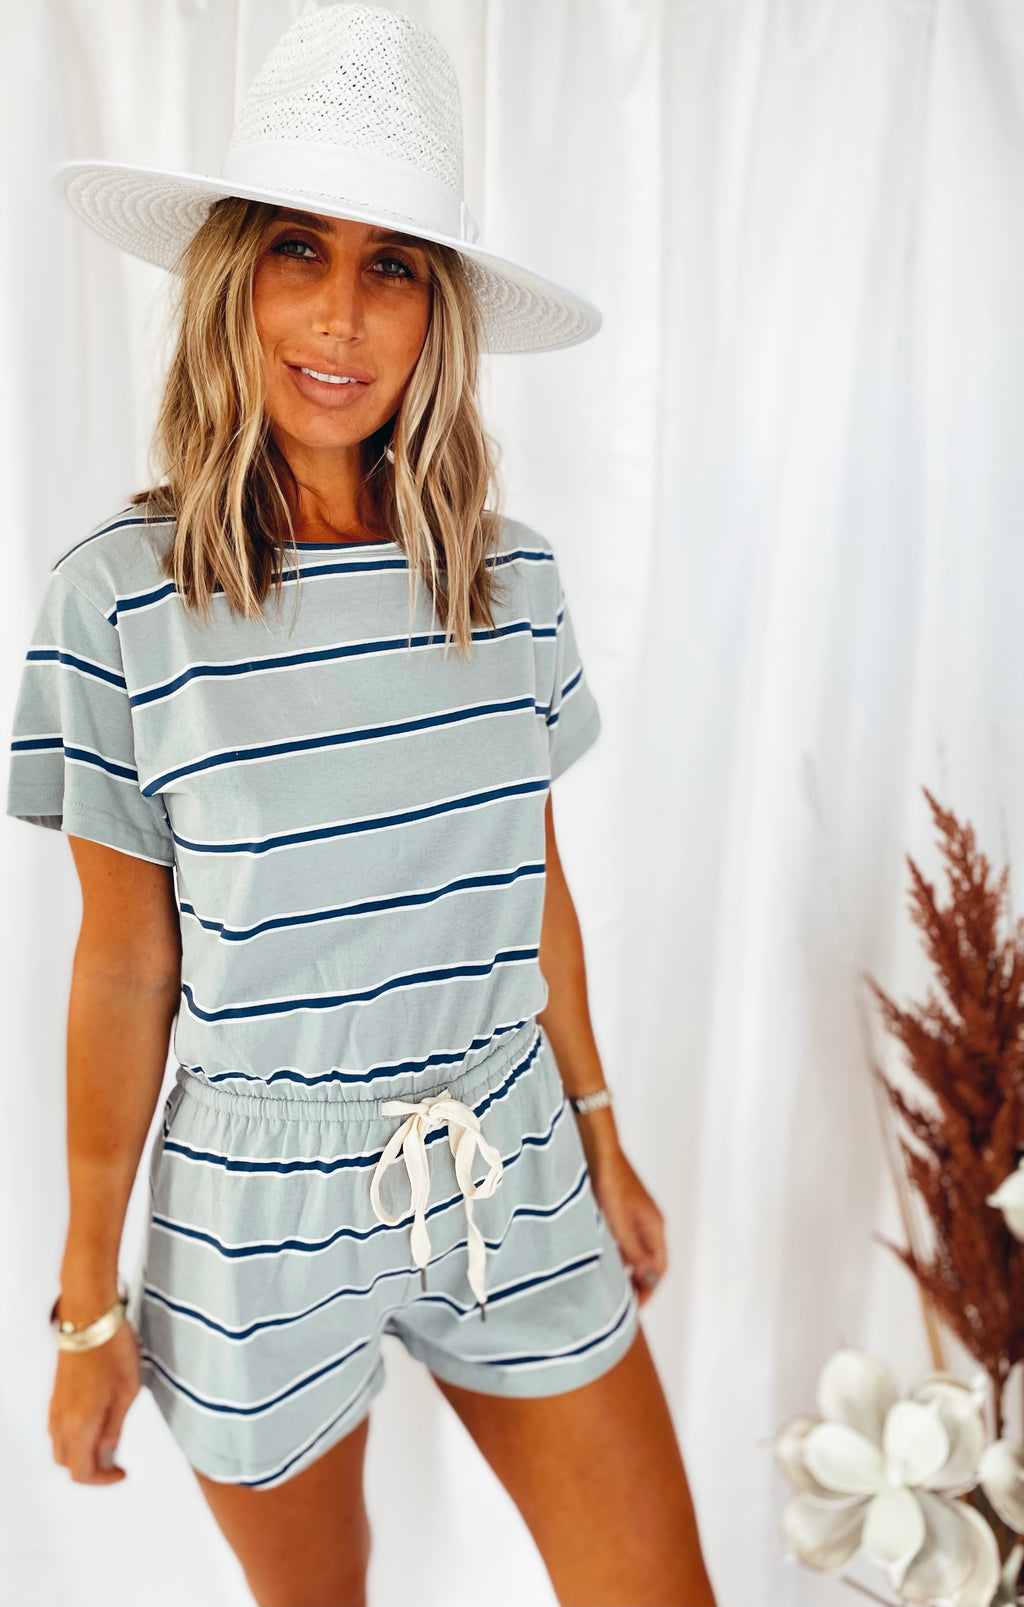 The Sailboat Romper